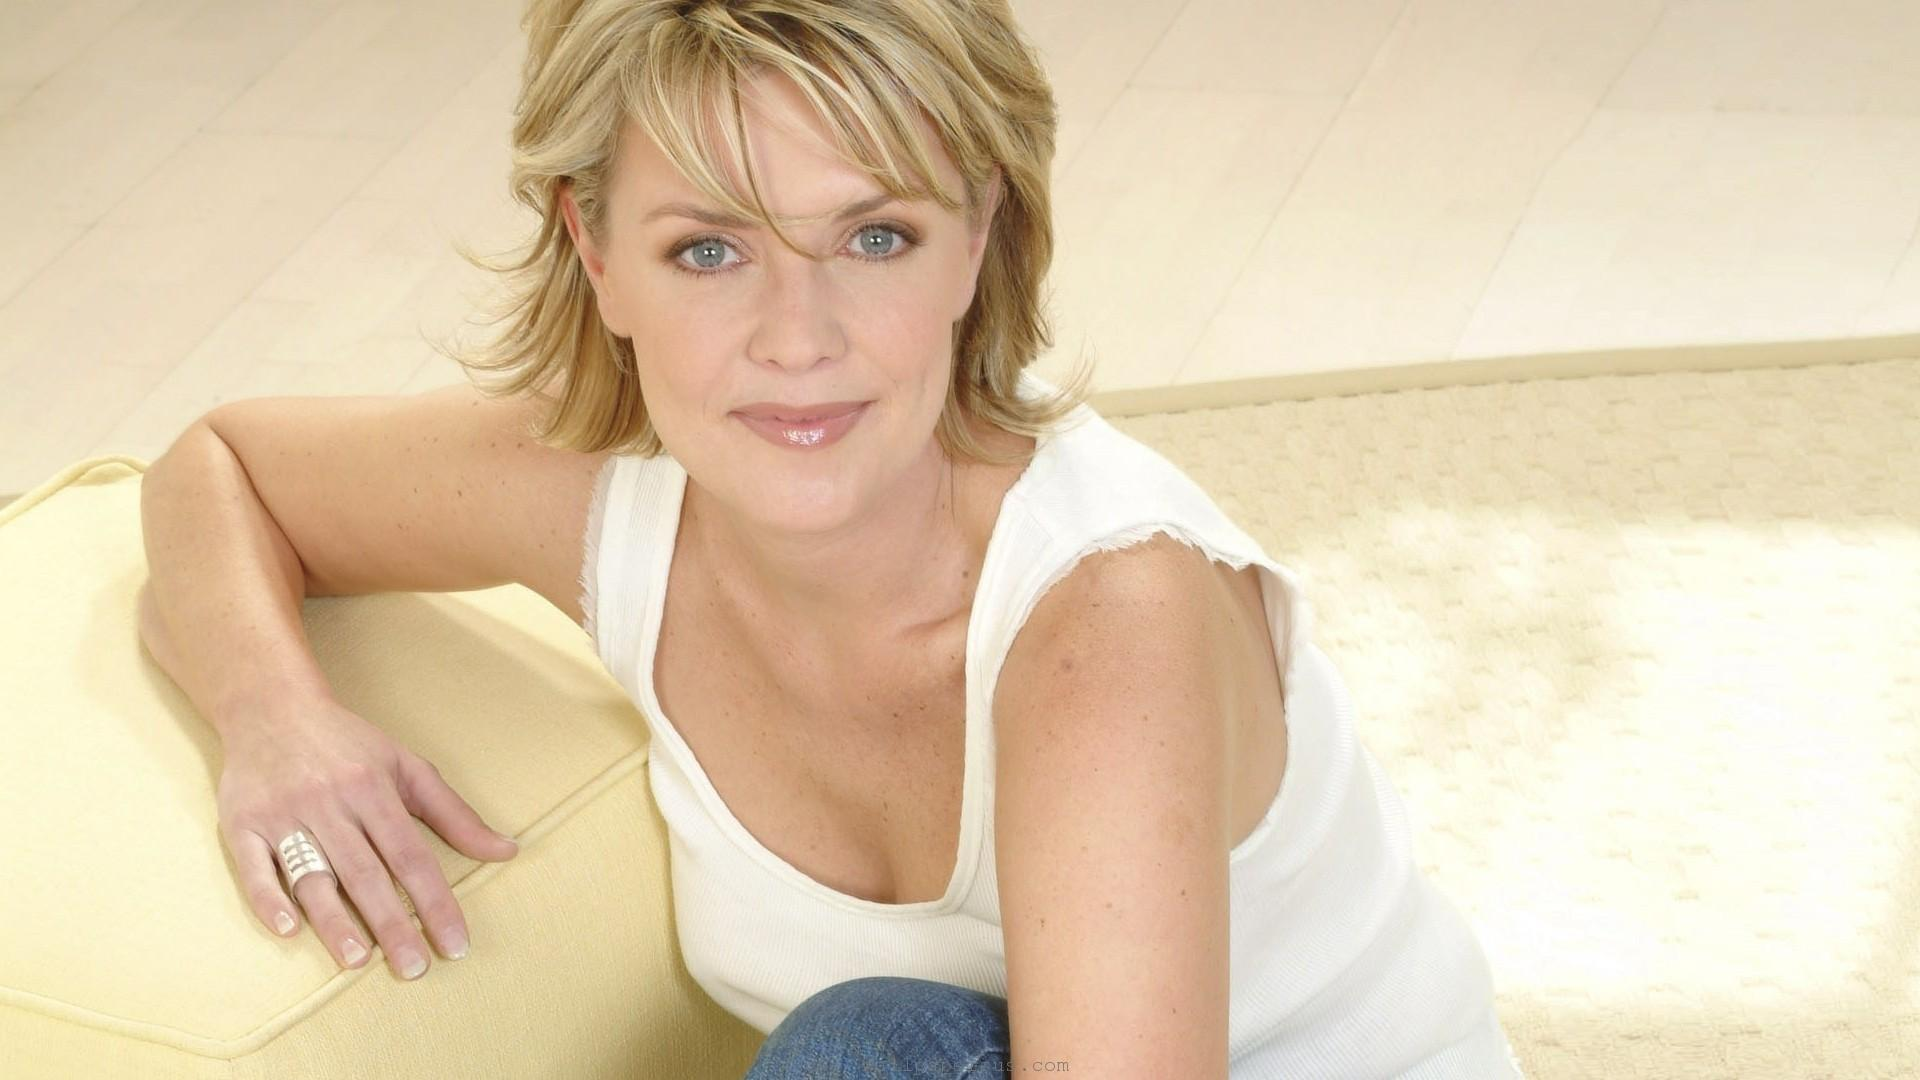 amanda tapping actress wallpaper 61193